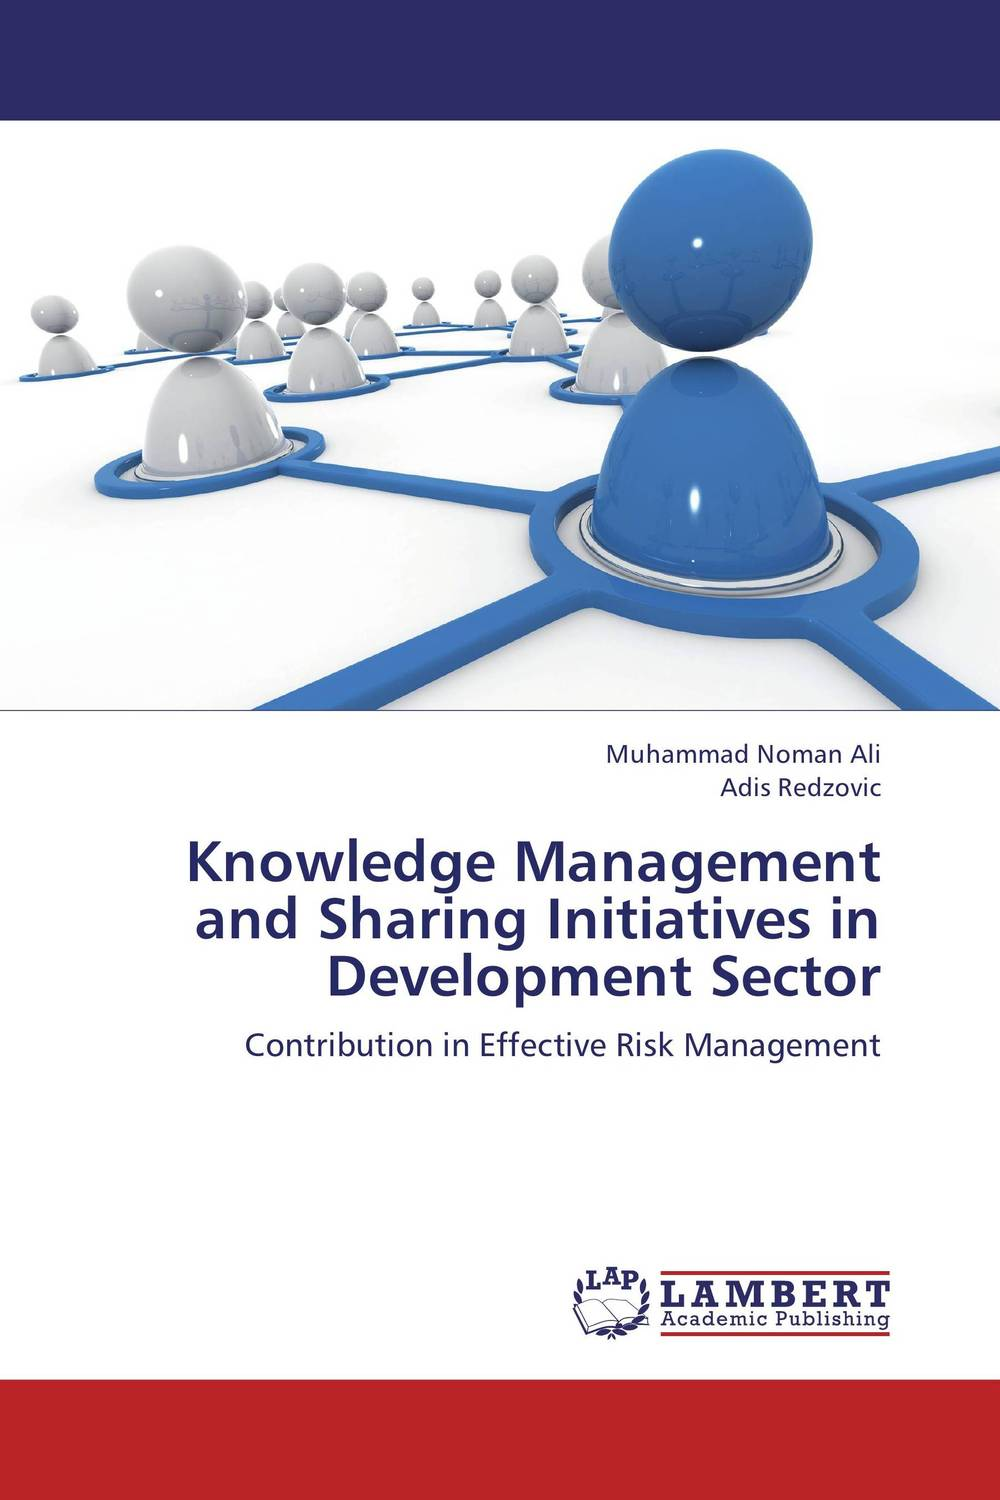 Knowledge Management and Sharing Initiatives in Development Sector